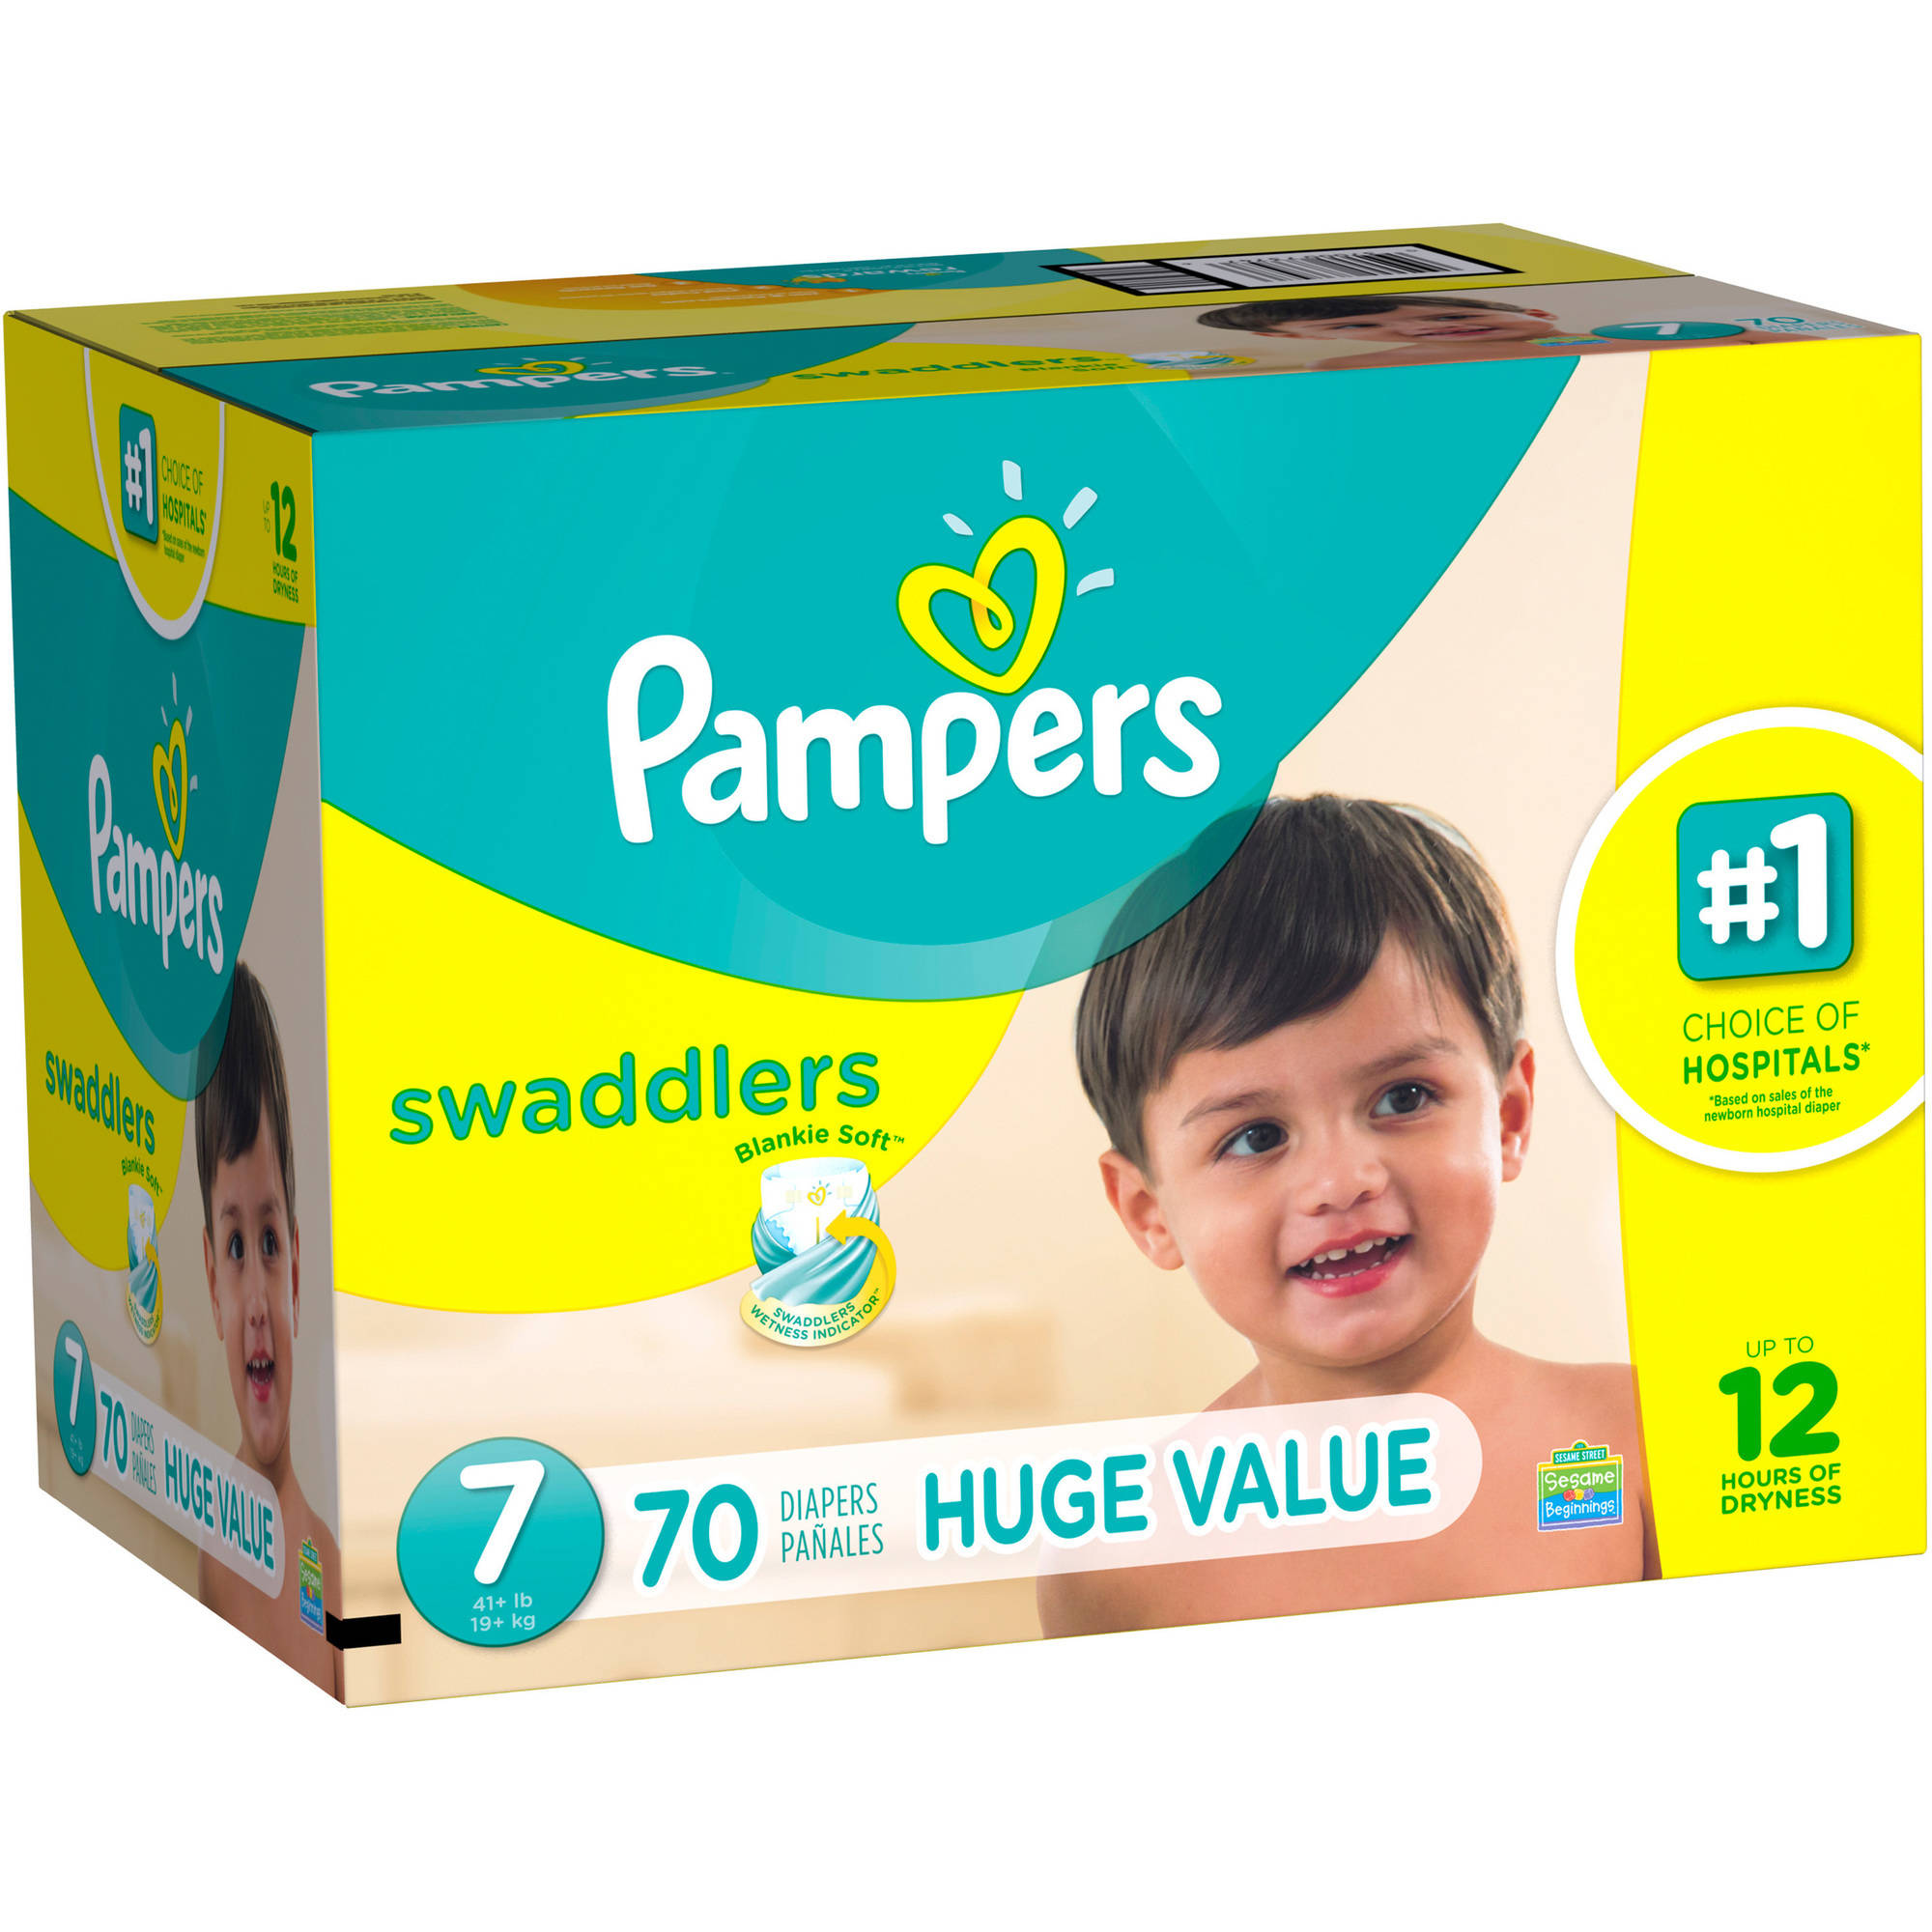 The lowest prices on Pampers diapers and wipes are at Target, Walgreens, CVS, Rite Aid and occasionally ToysRUs. Pampers diaper coupons can save you up to $ per pack! The lowest prices on Pampers diapers and wipes are at Target, Walgreens, CVS, Rite Aid and occasionally ToysRUs.